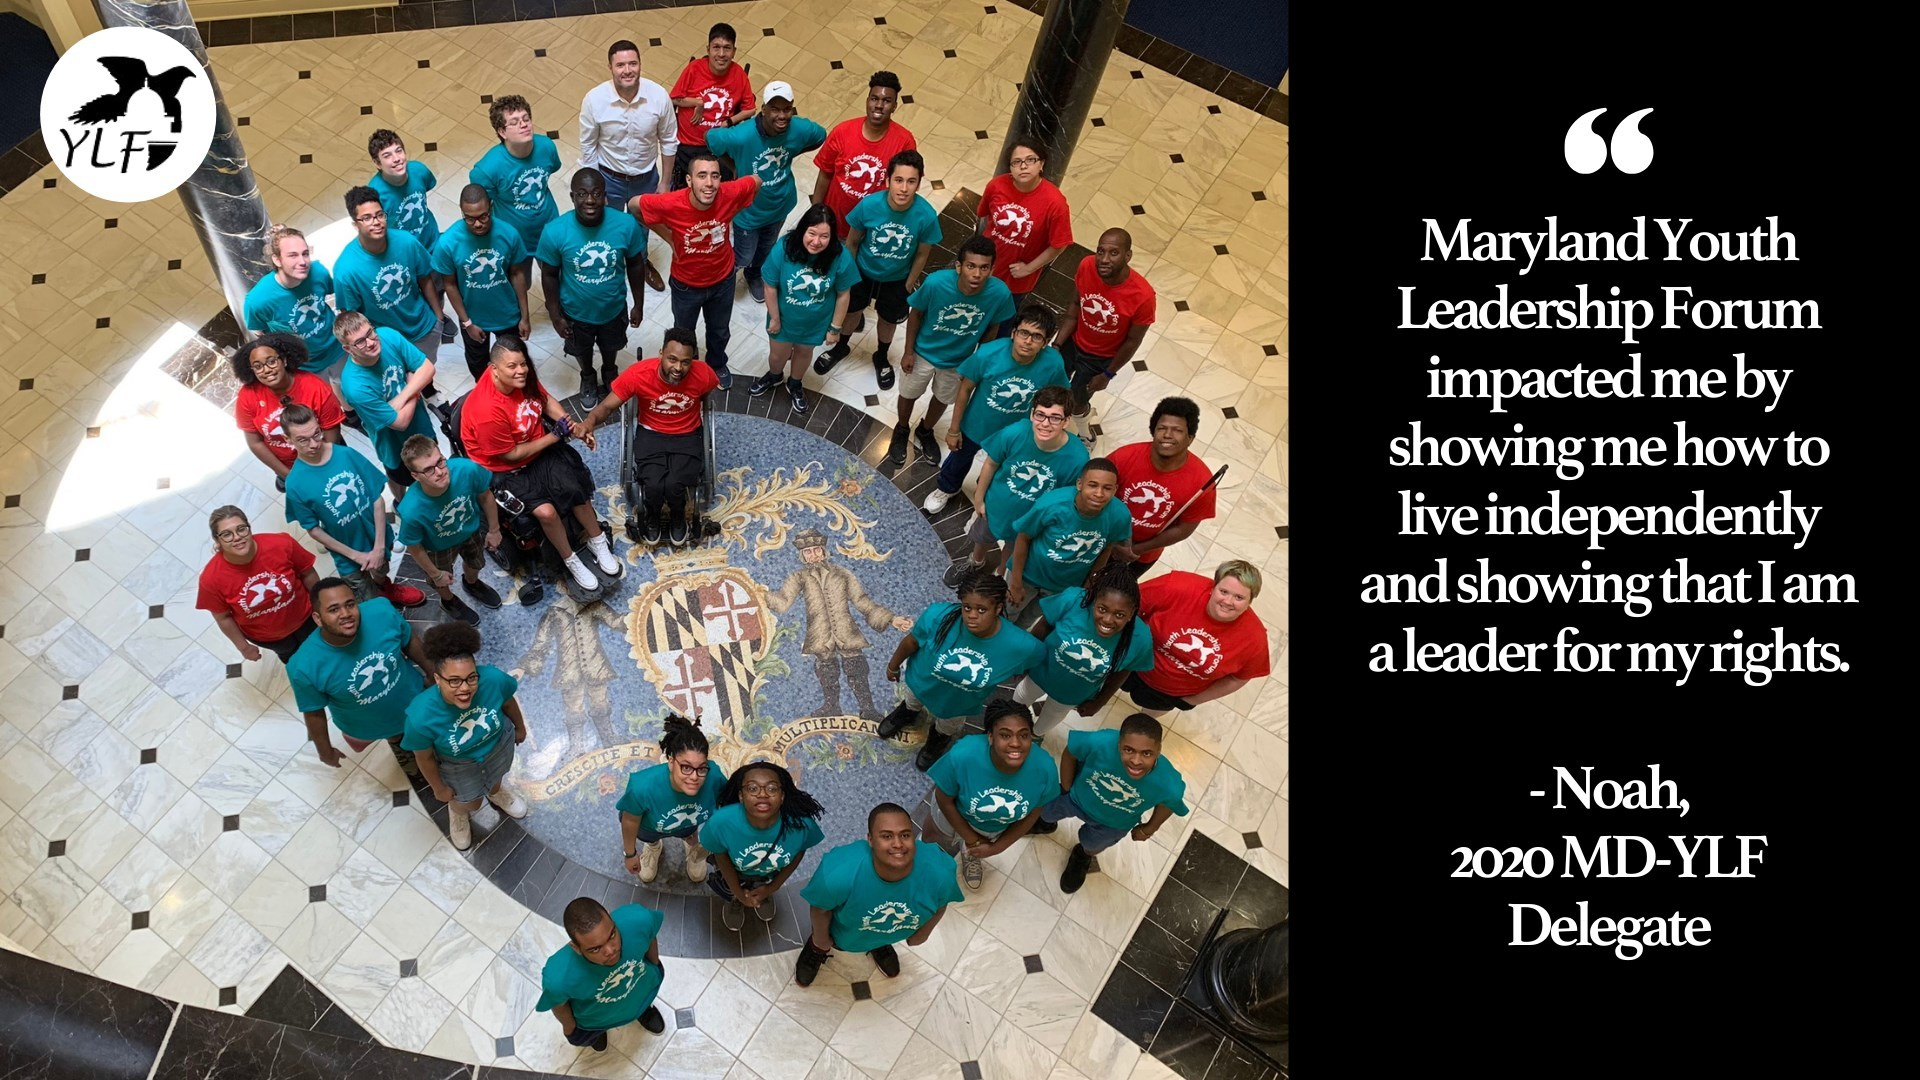 A picture of a group of youth with disabilities posing in the MD State Legislature Building with the caption saying 'Maryland Youth Leadership Forum impacted me by showing me how to live independently and showing that I am a leader for my rights.' - Noah, 2020 MDYF Delegate""